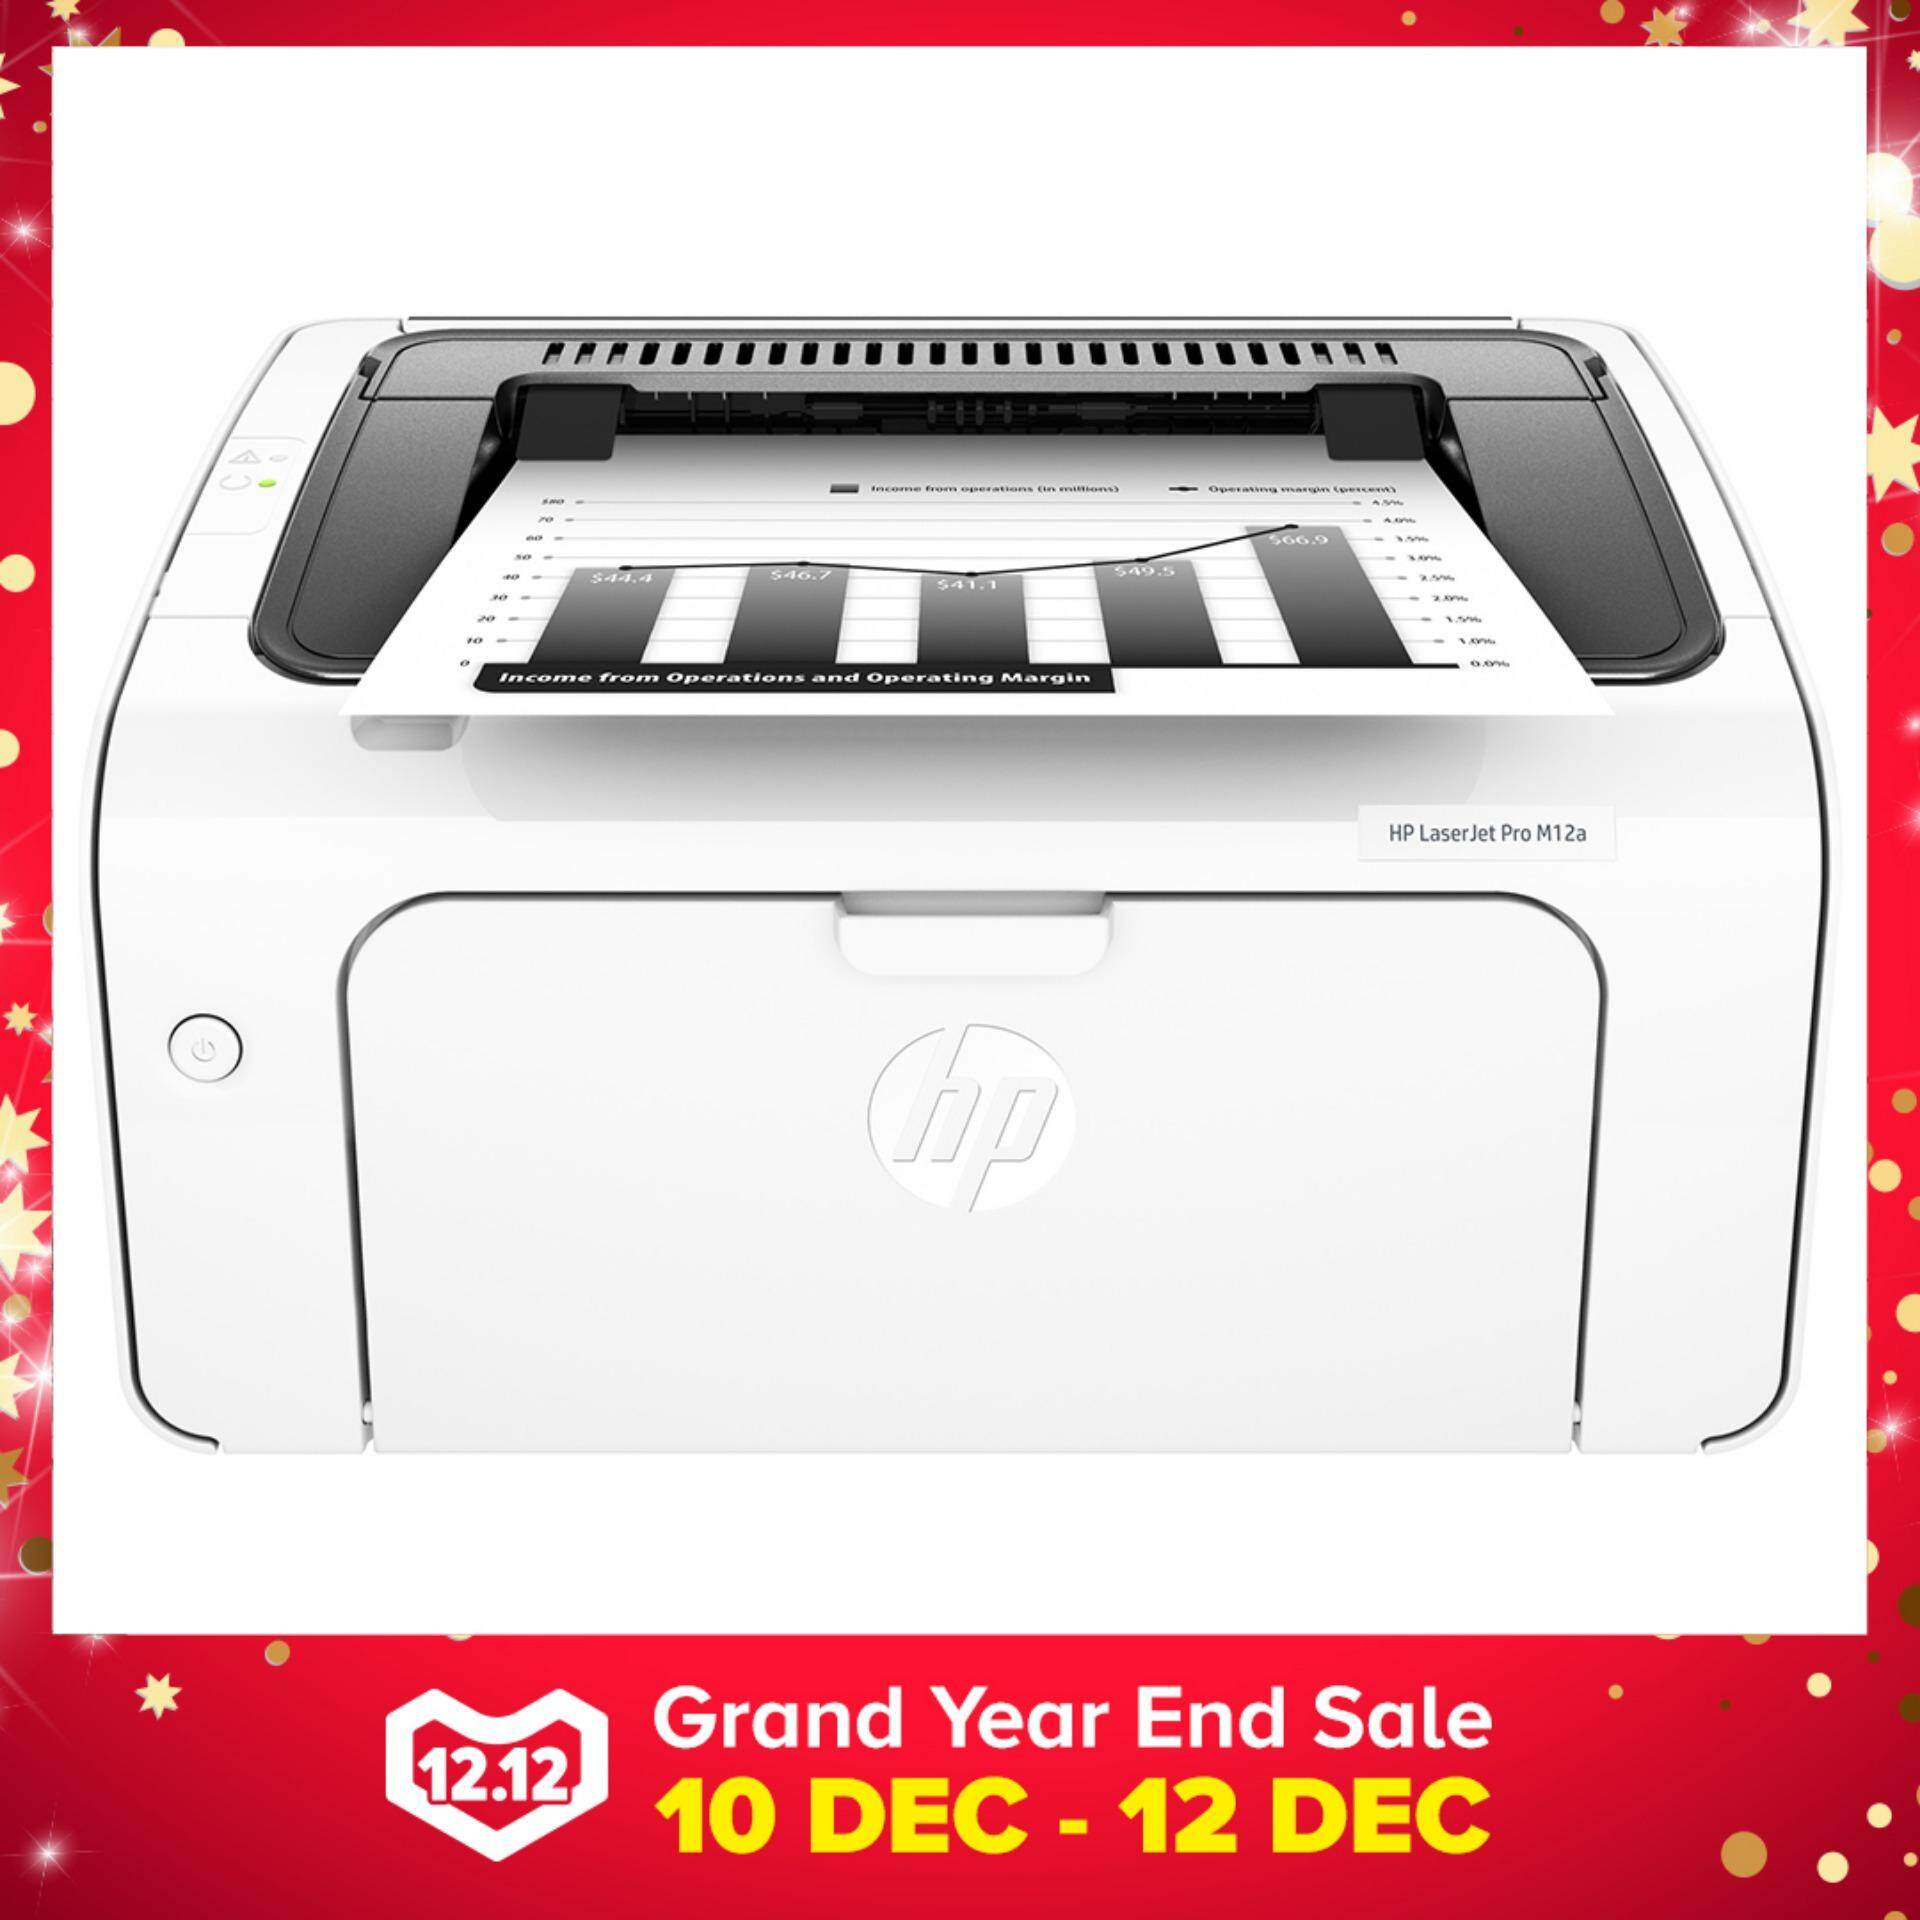 Hp Computers Laptops For The Best Price In Malaysia Notebook 14 Am127tx M12a Mono Laserjet Pro Printer T0l45a